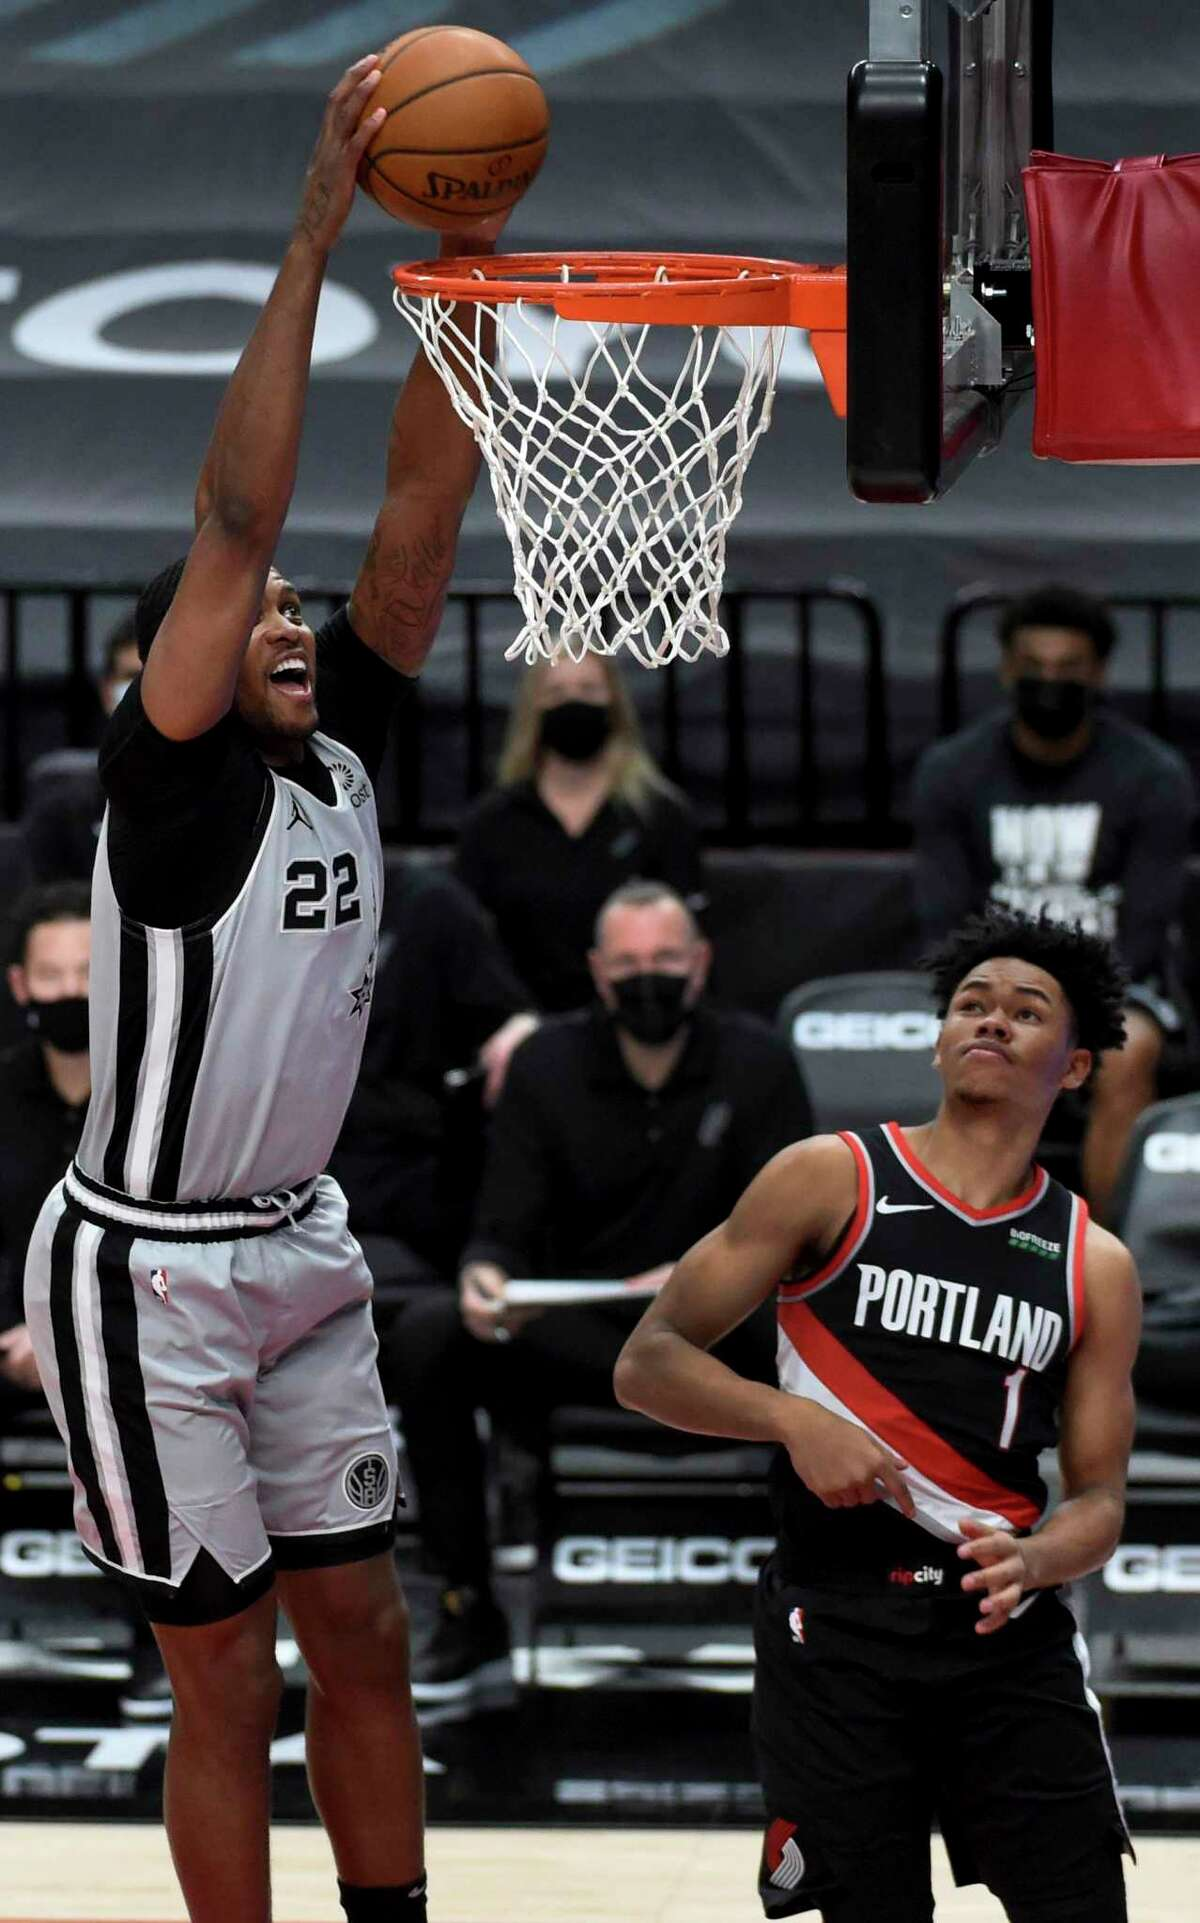 Rudy Gay throws down a dunk for the Spurs in front of the Trail Blazers' Anfernee Simons on Monday in Portland. Gay contributed 21 points off the bench, hitting 5 of 8 3-pointers.